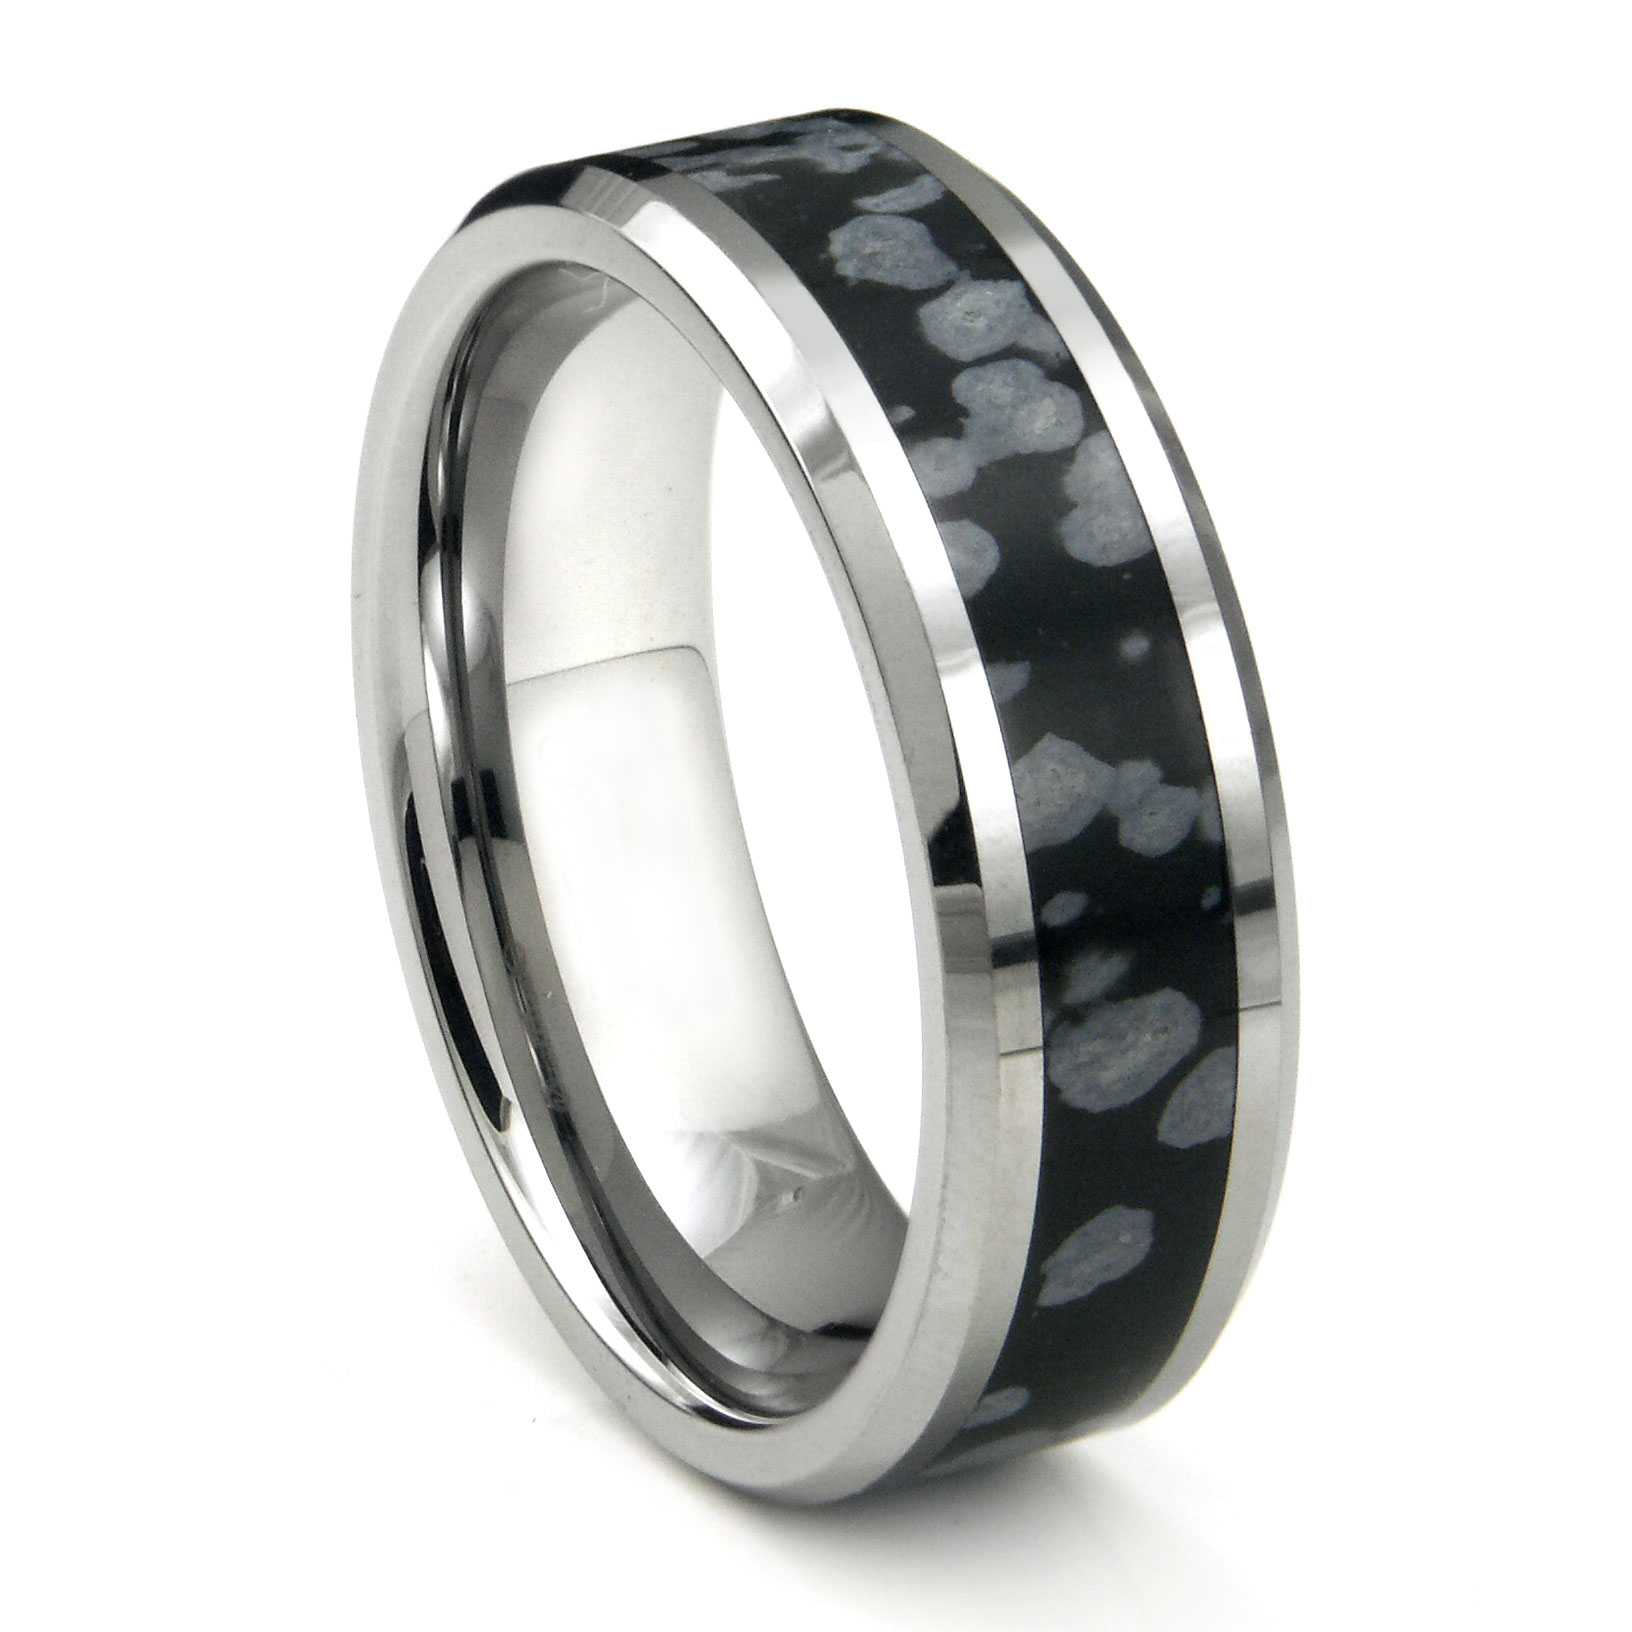 tungsten carbide cosmic riverstone inlay wedding band ring. Black Bedroom Furniture Sets. Home Design Ideas